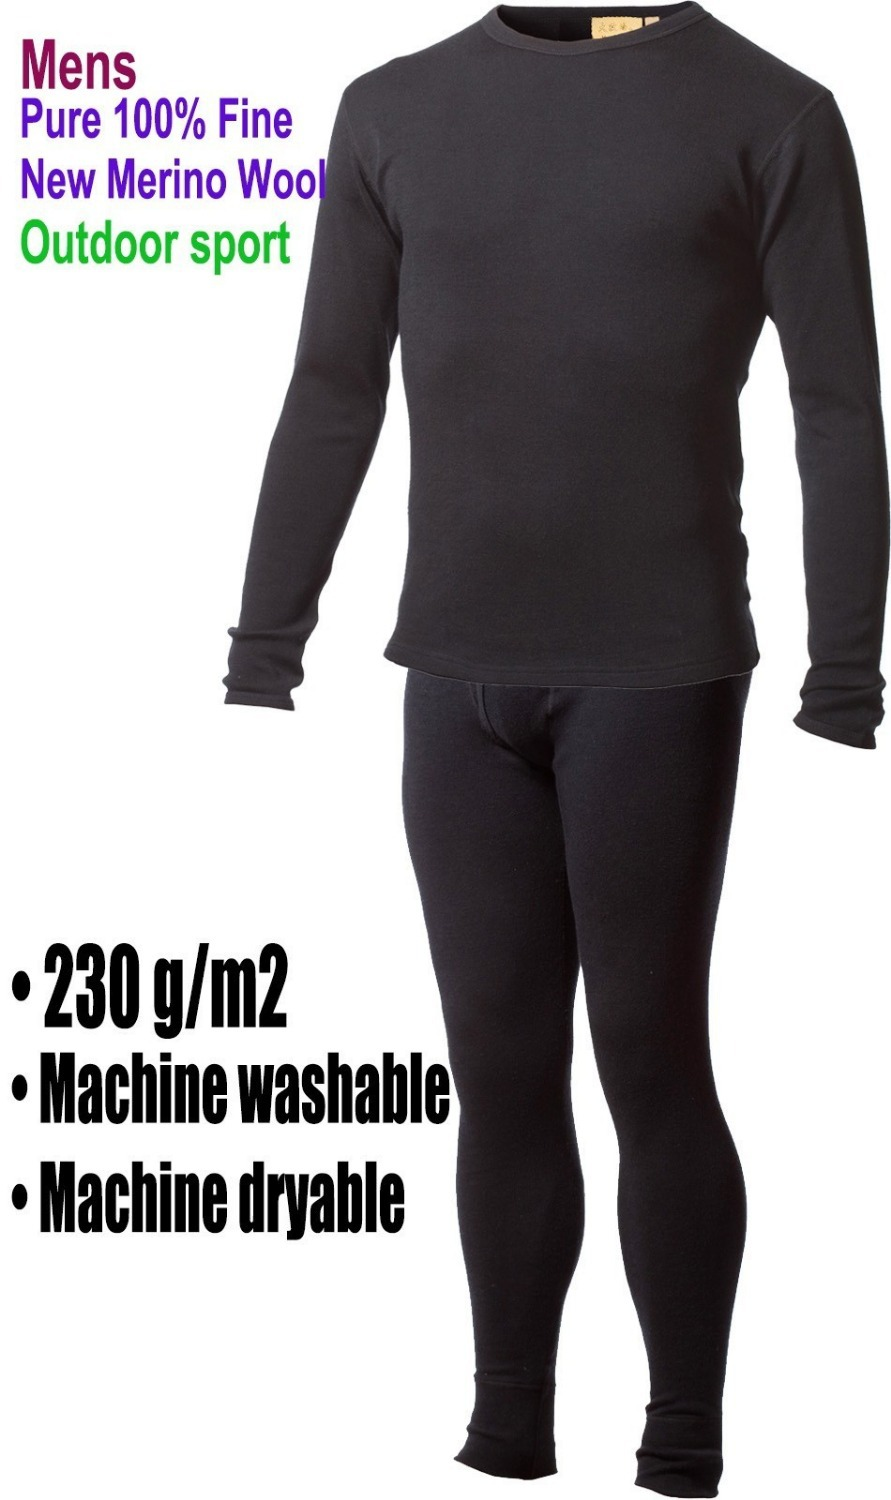 Soft Thermal Underwear Promotion-Shop for Promotional Soft Thermal ...